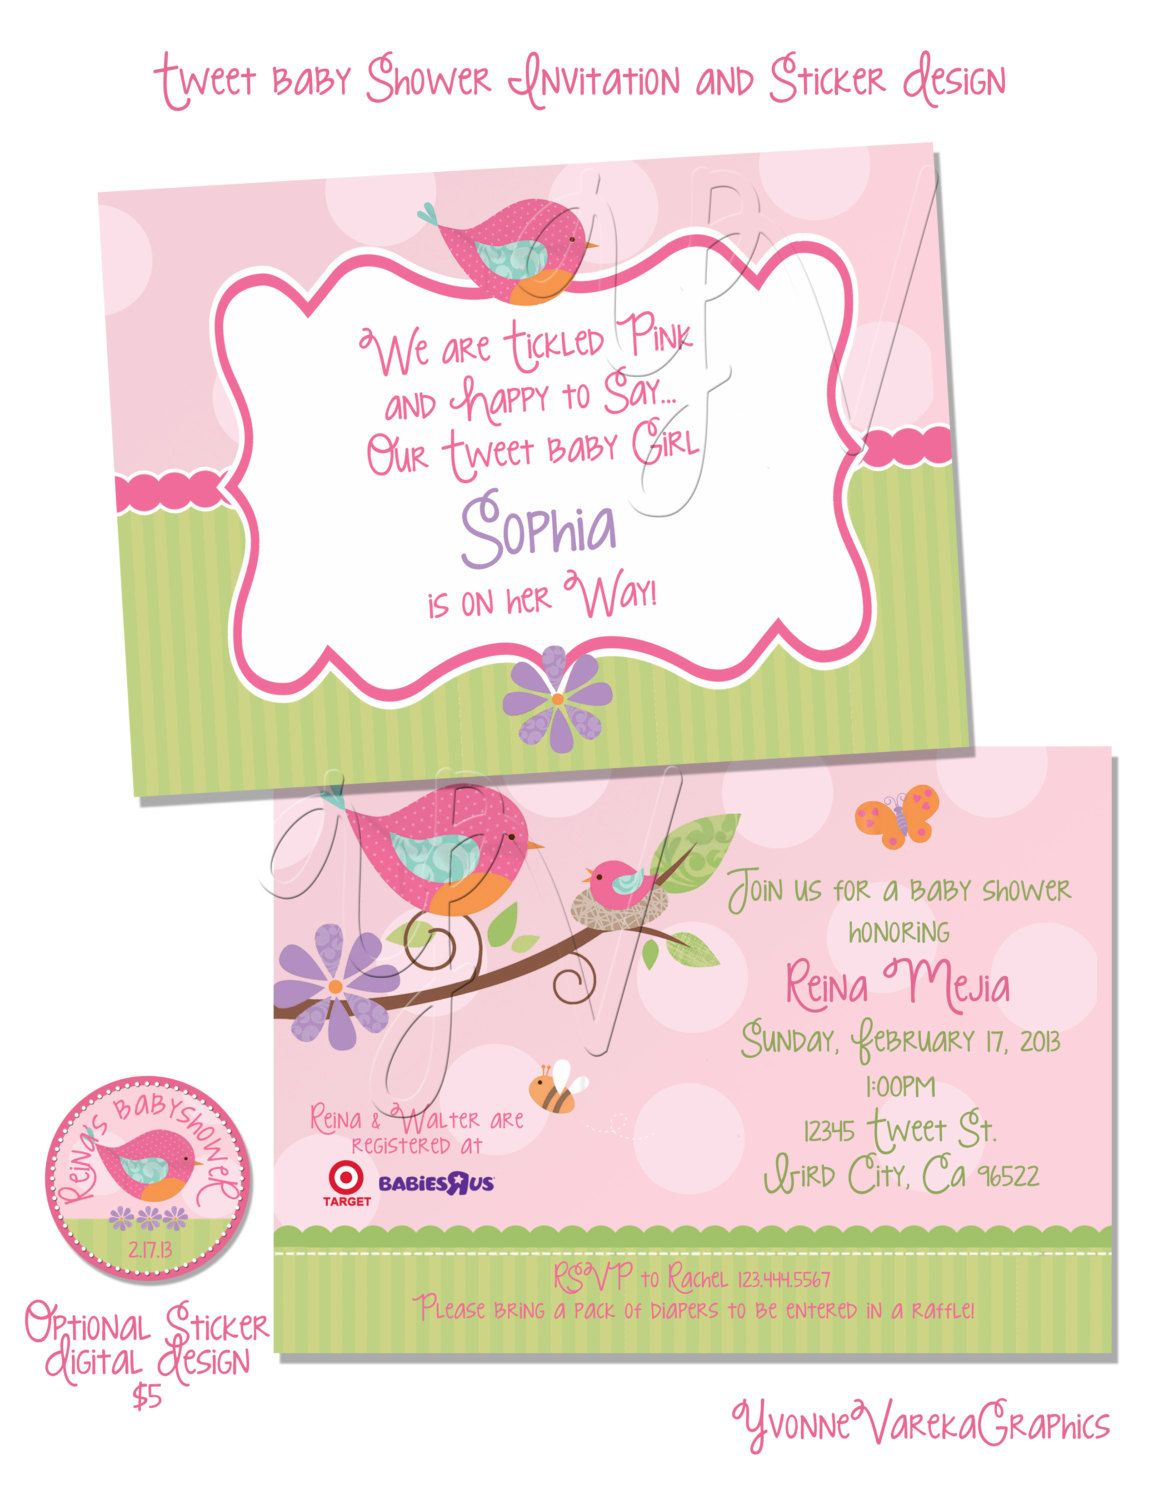 Party City Invitations Baby Shower 2